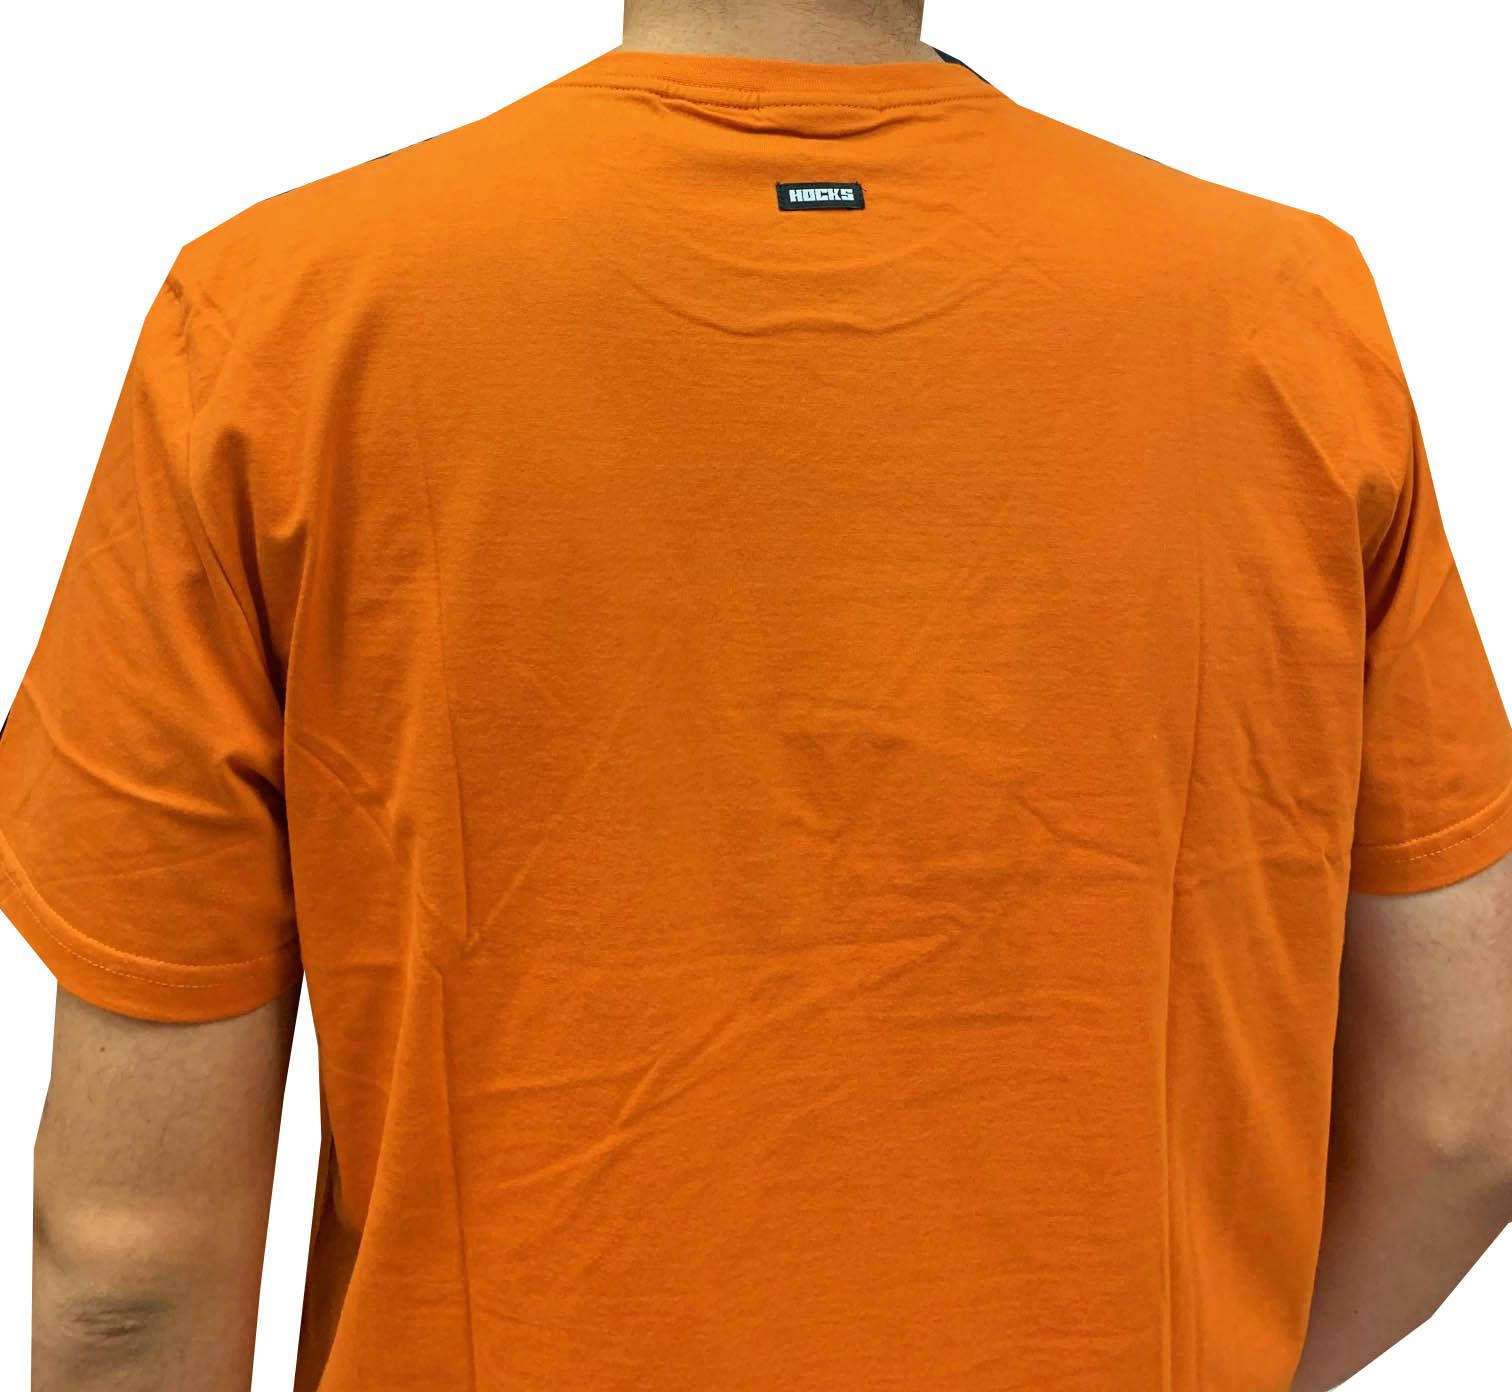 Camiseta Hocks Base H20078 Masculina 20078